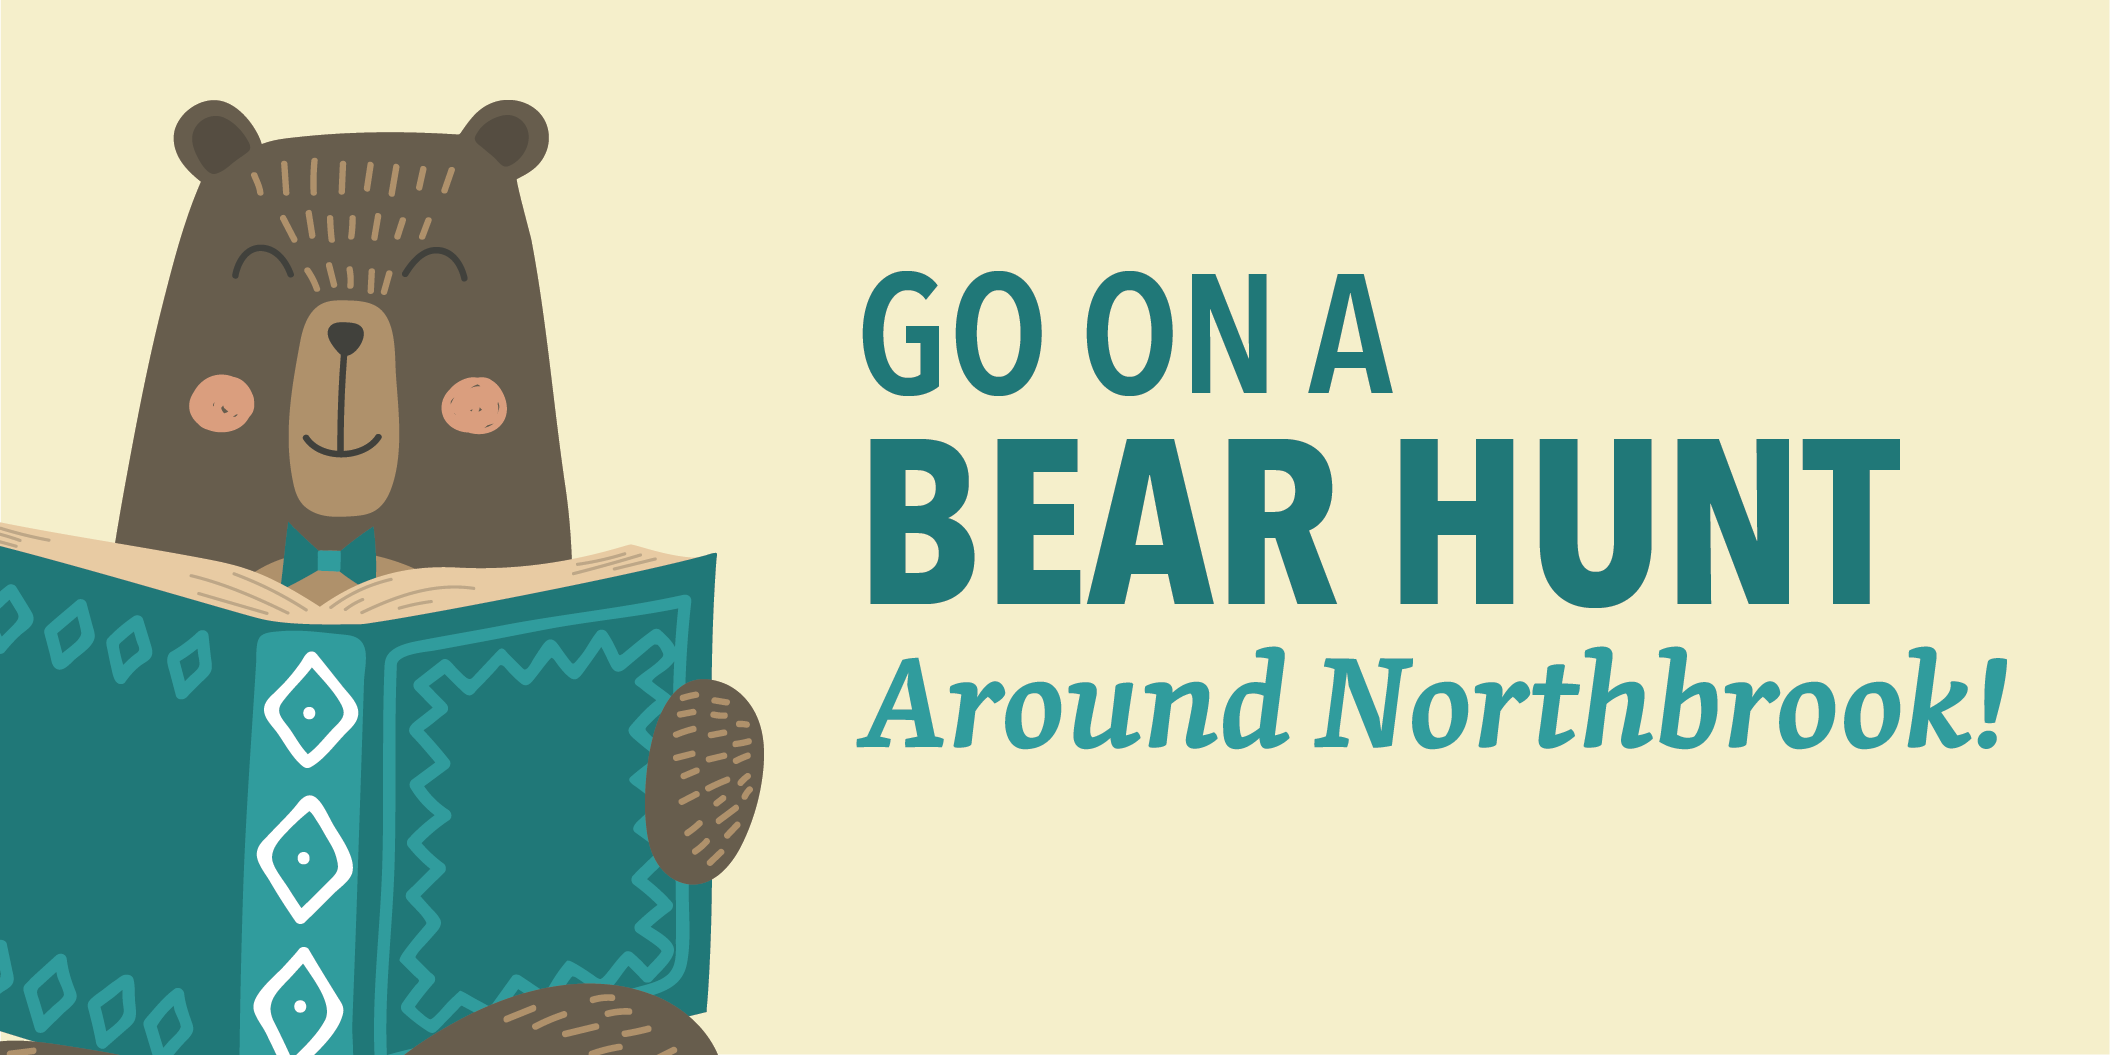 Go on a Bear Hunt Around Northbrook